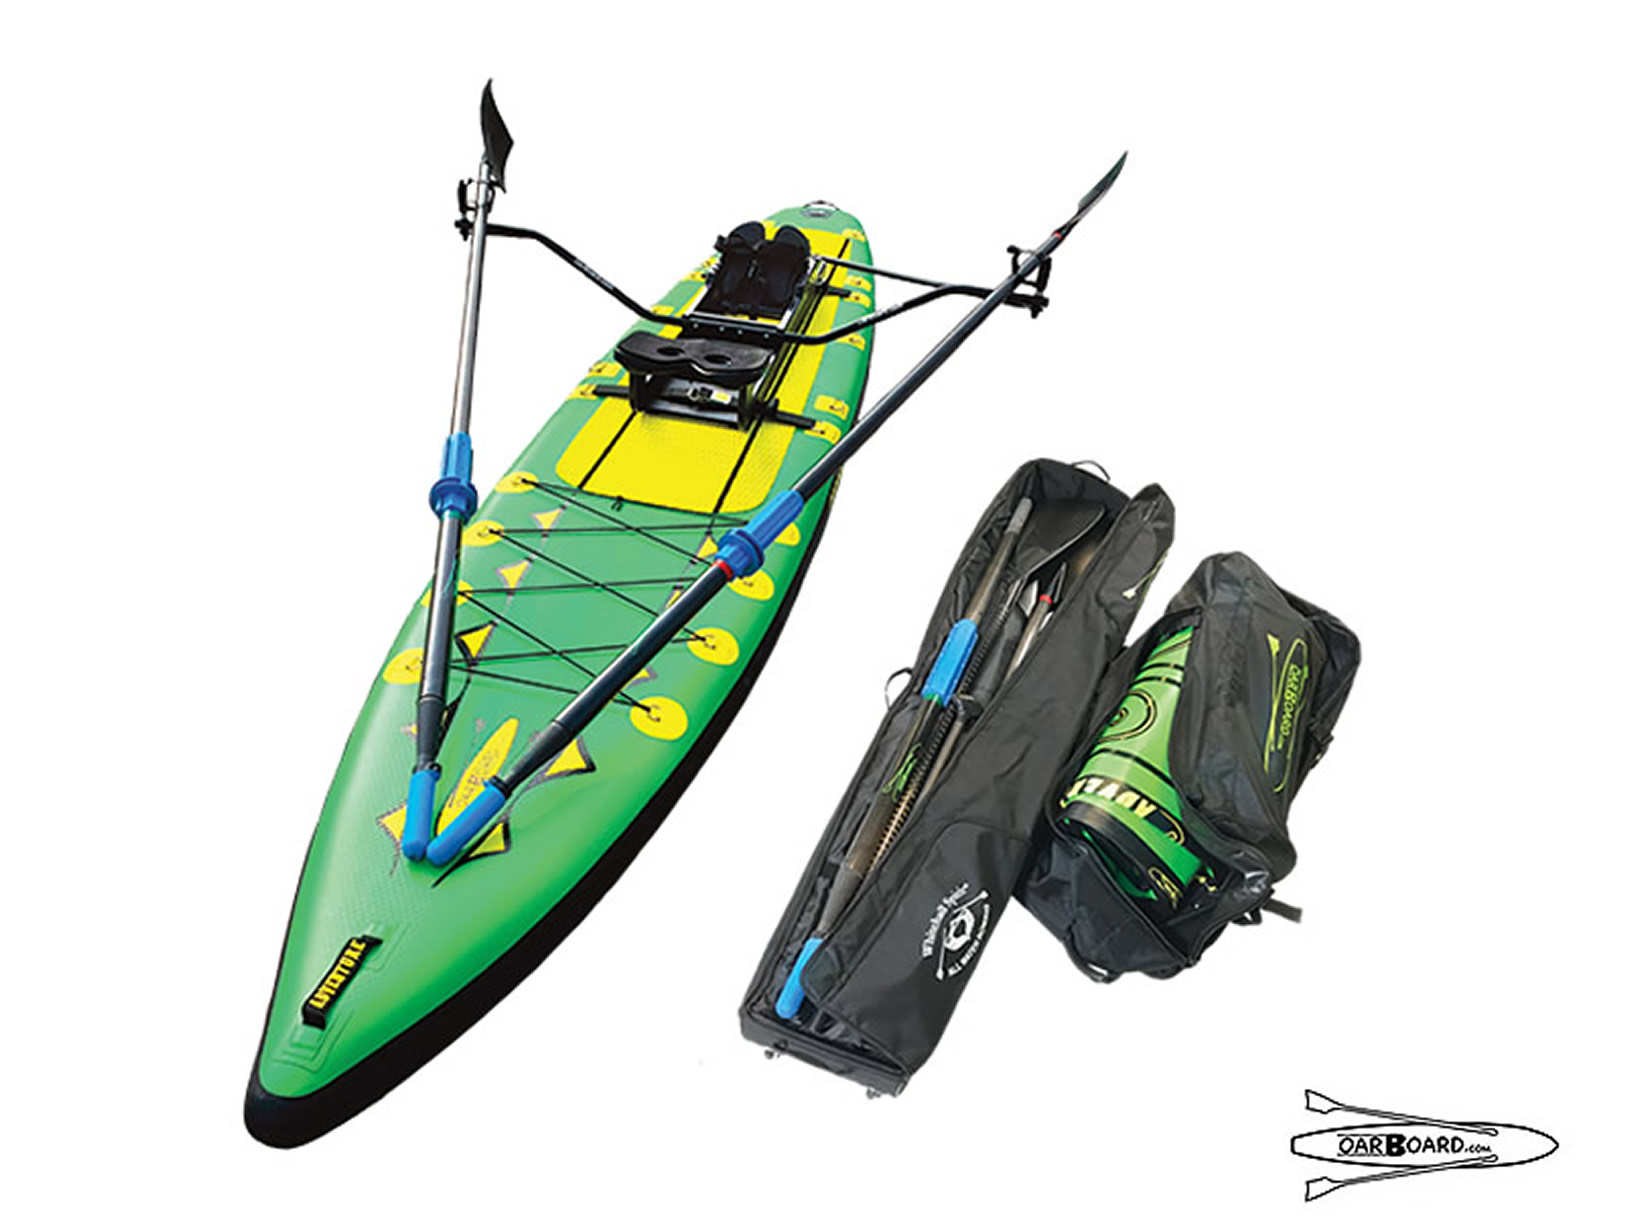 Oar Board® SUP Fit On Top Rower, Stand Up Paddle Board, Inflatable SUP, Oar Board, Whitehall Rowing & Sail